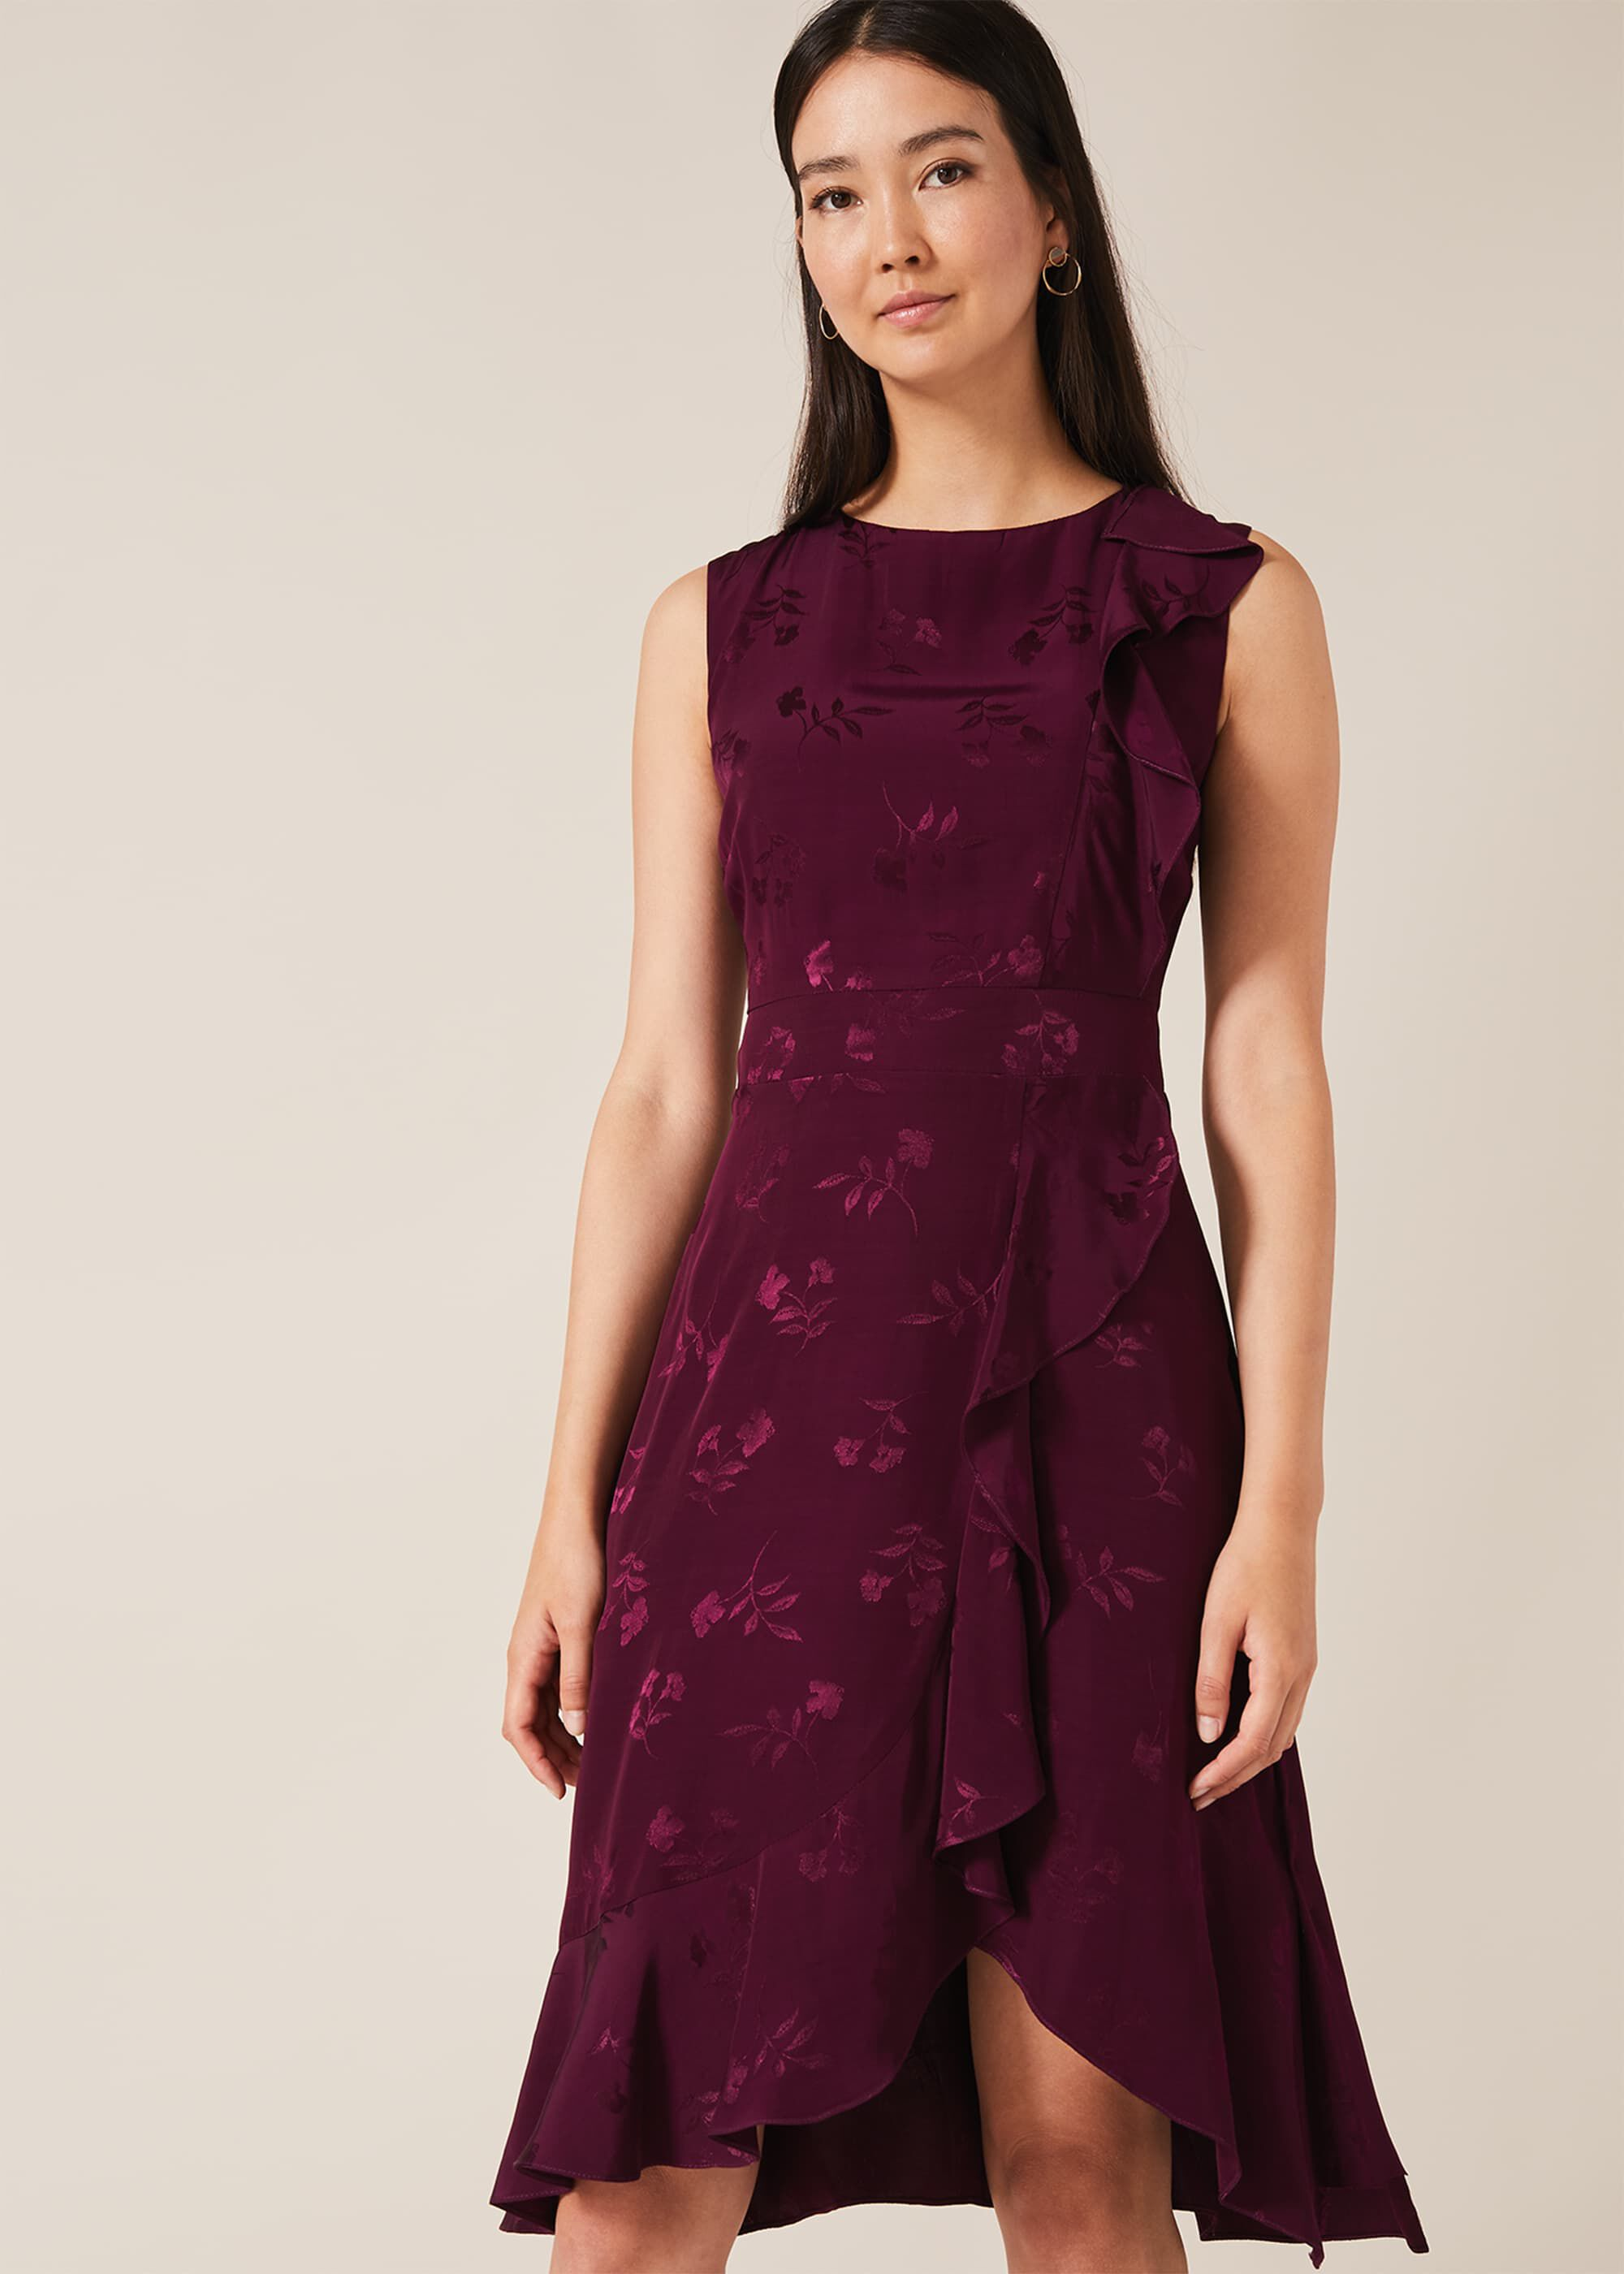 Phase Eight Reese Jacquard Frill Dress, Purple, Default